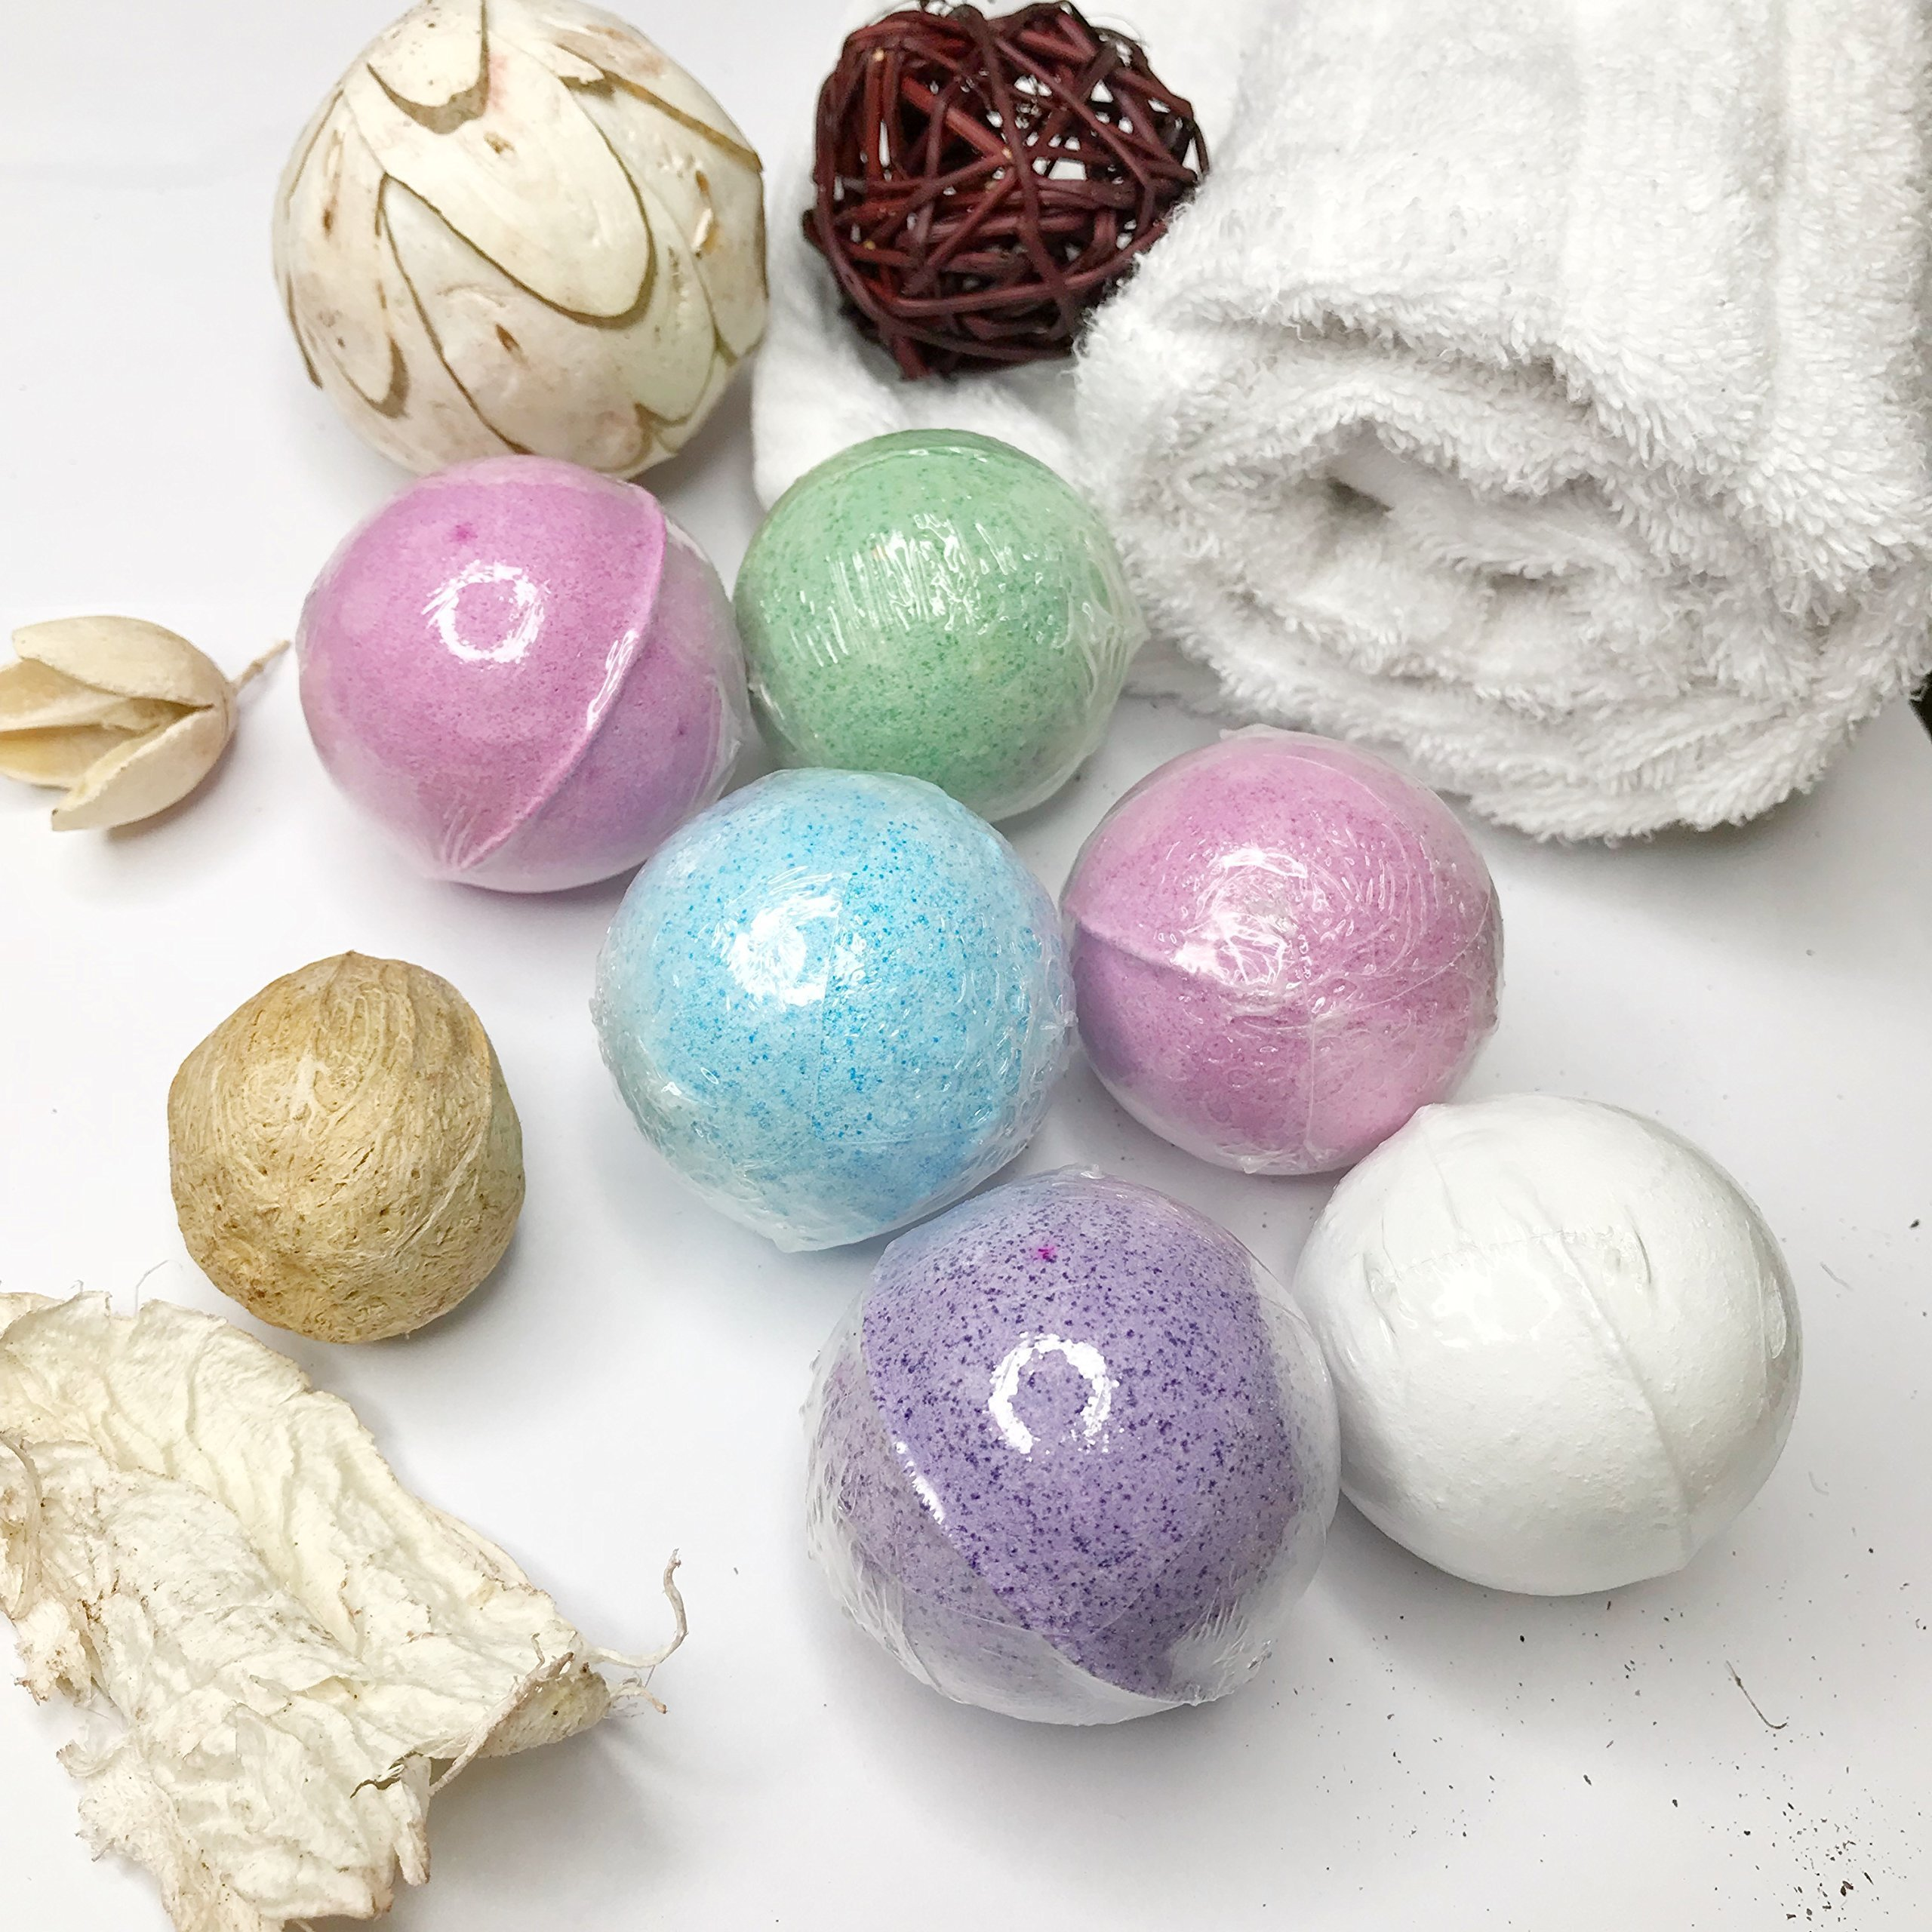 Handmade Bath Bombs Package Gift Set, Organic And Natural Bath Bomb Kit with essential oils, Perfect for Relax and Moisturize your body, Bets Gift Ideas For Women, Girlfriend and Kids. 6 x 40 by CUTE APPLE